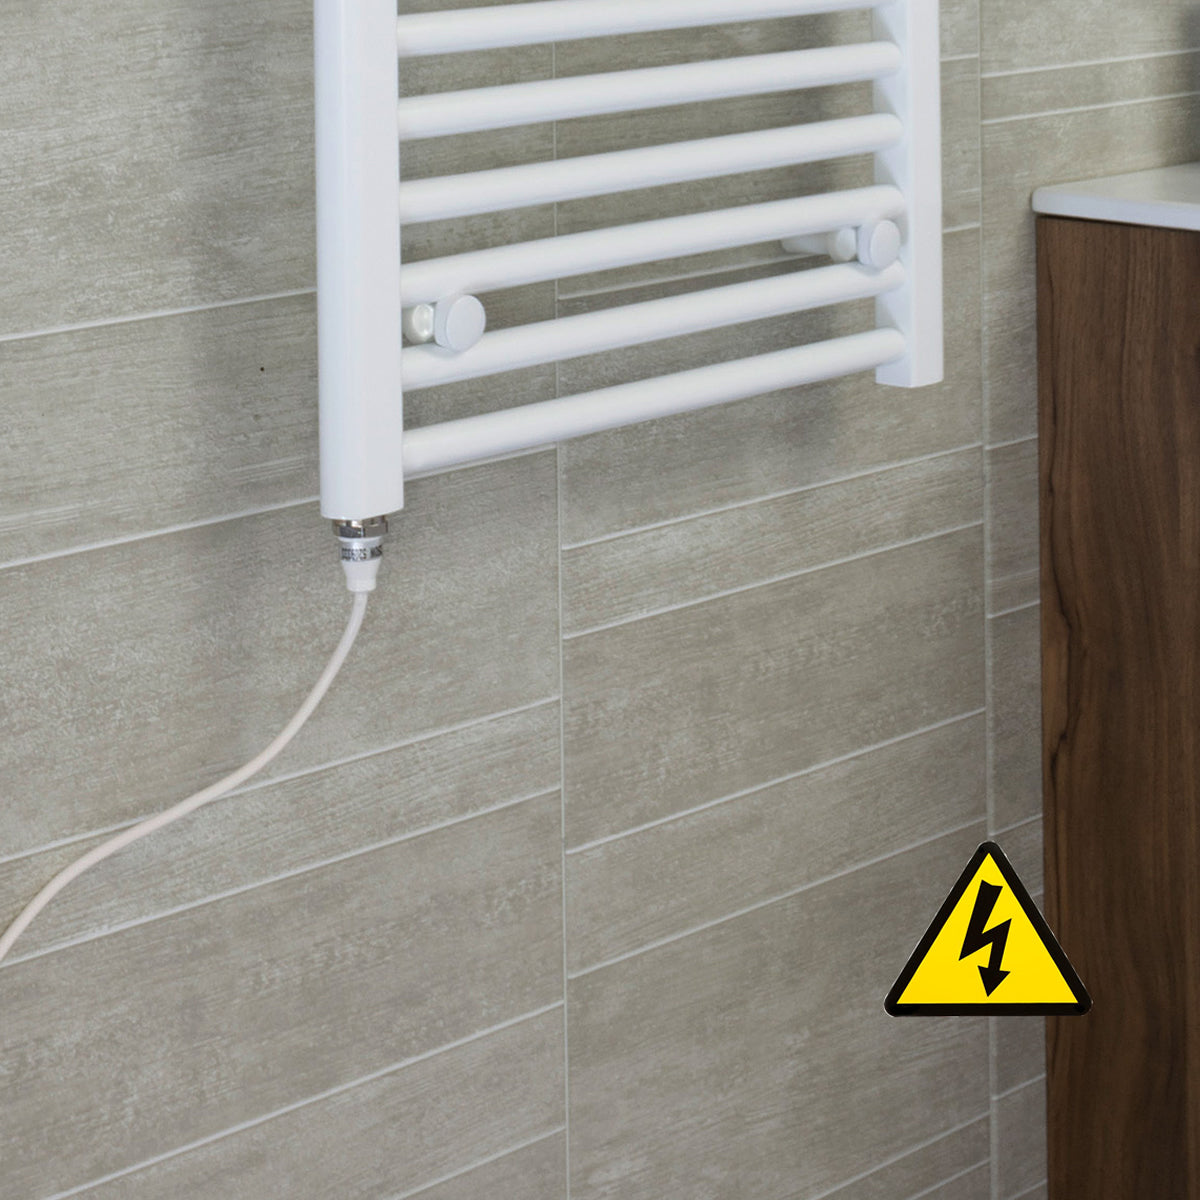 650mm Wide 1000mm High Pre-Filled White Electric Towel Rail Radiator With Single Heat Element